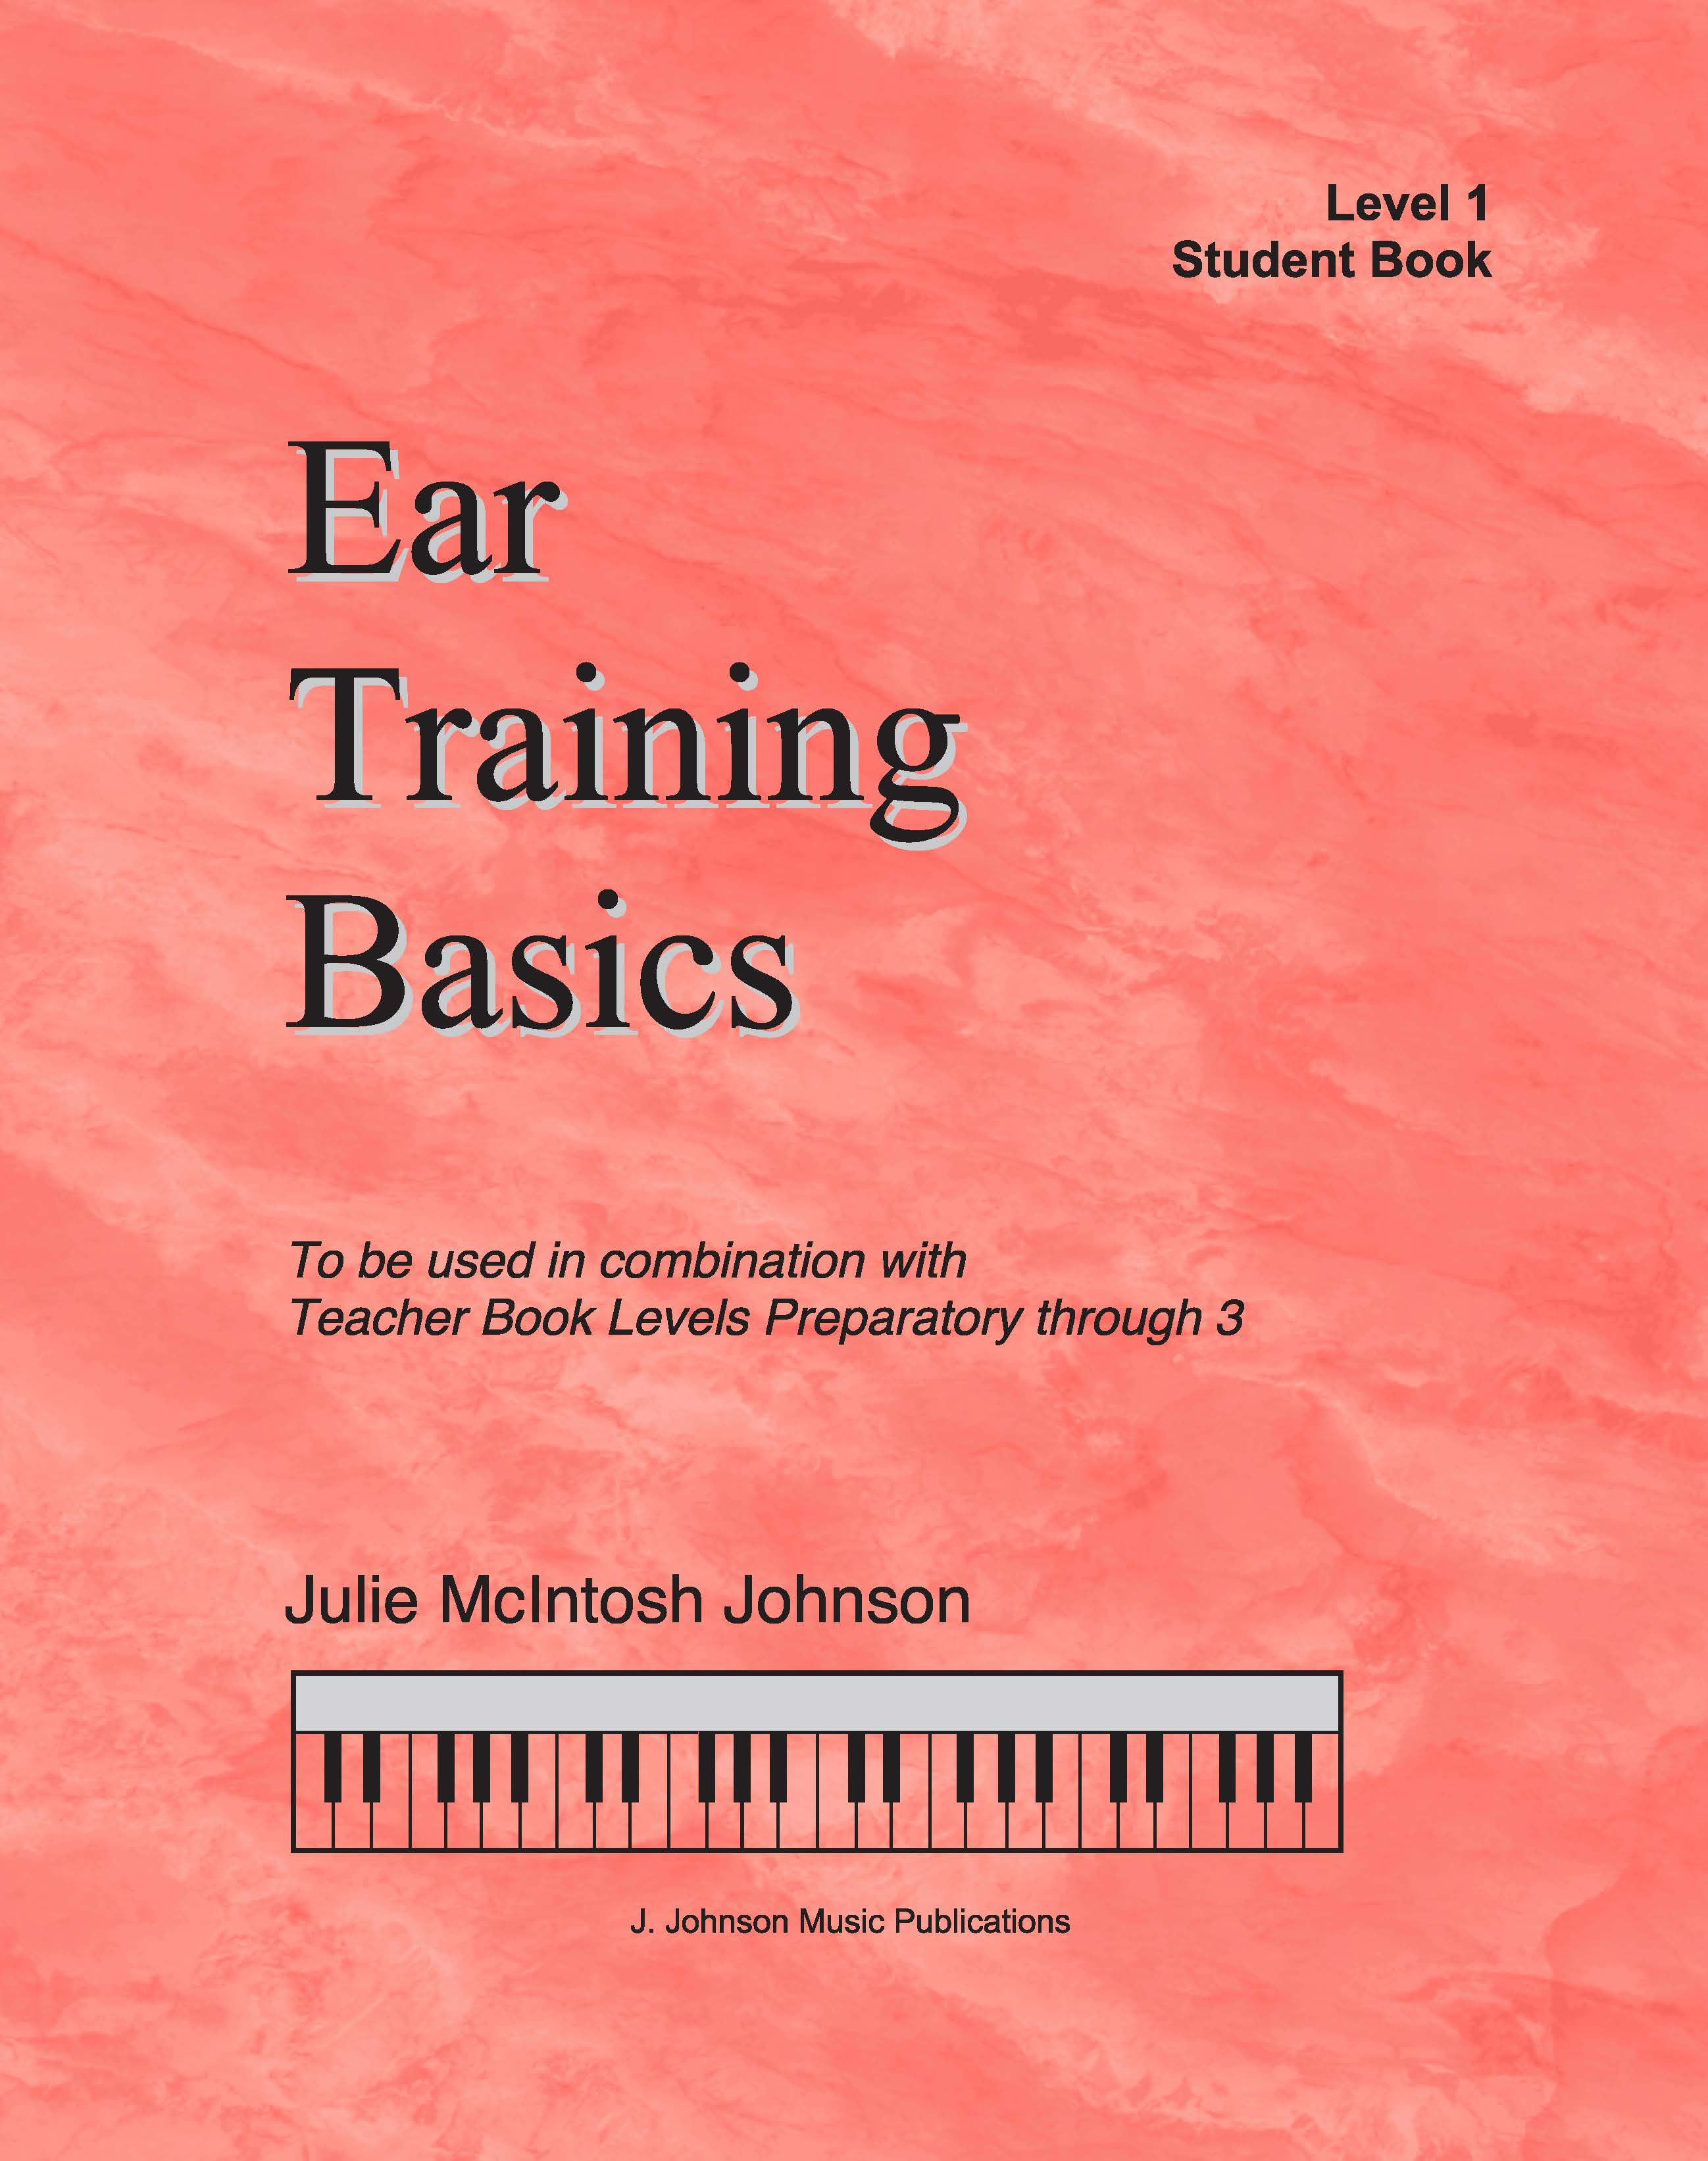 Ear Training Basics Level 1